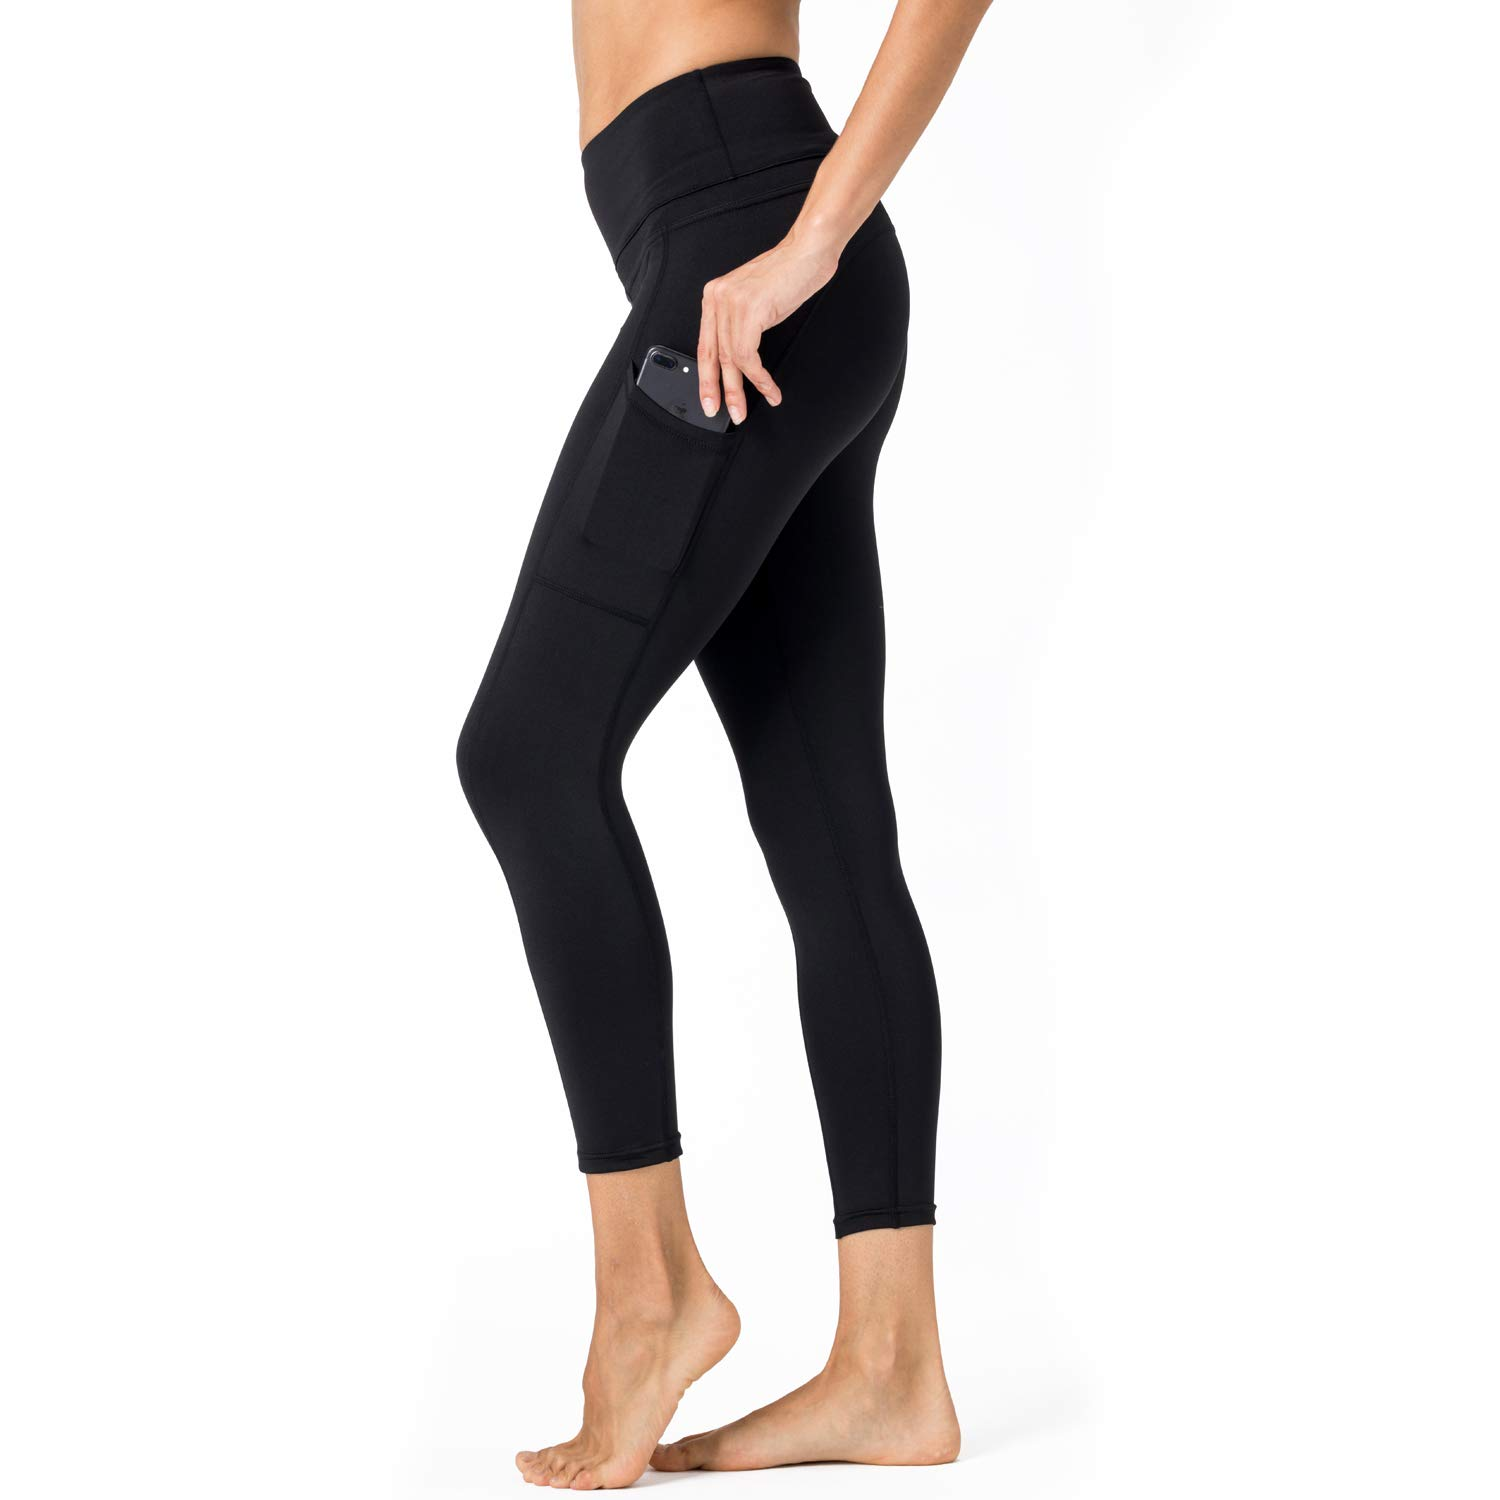 mettime US Womens Fashions High Waist Elastic Phone Pocket Skinny Solid Color Cropped Pants Running Trousers (Black, L)